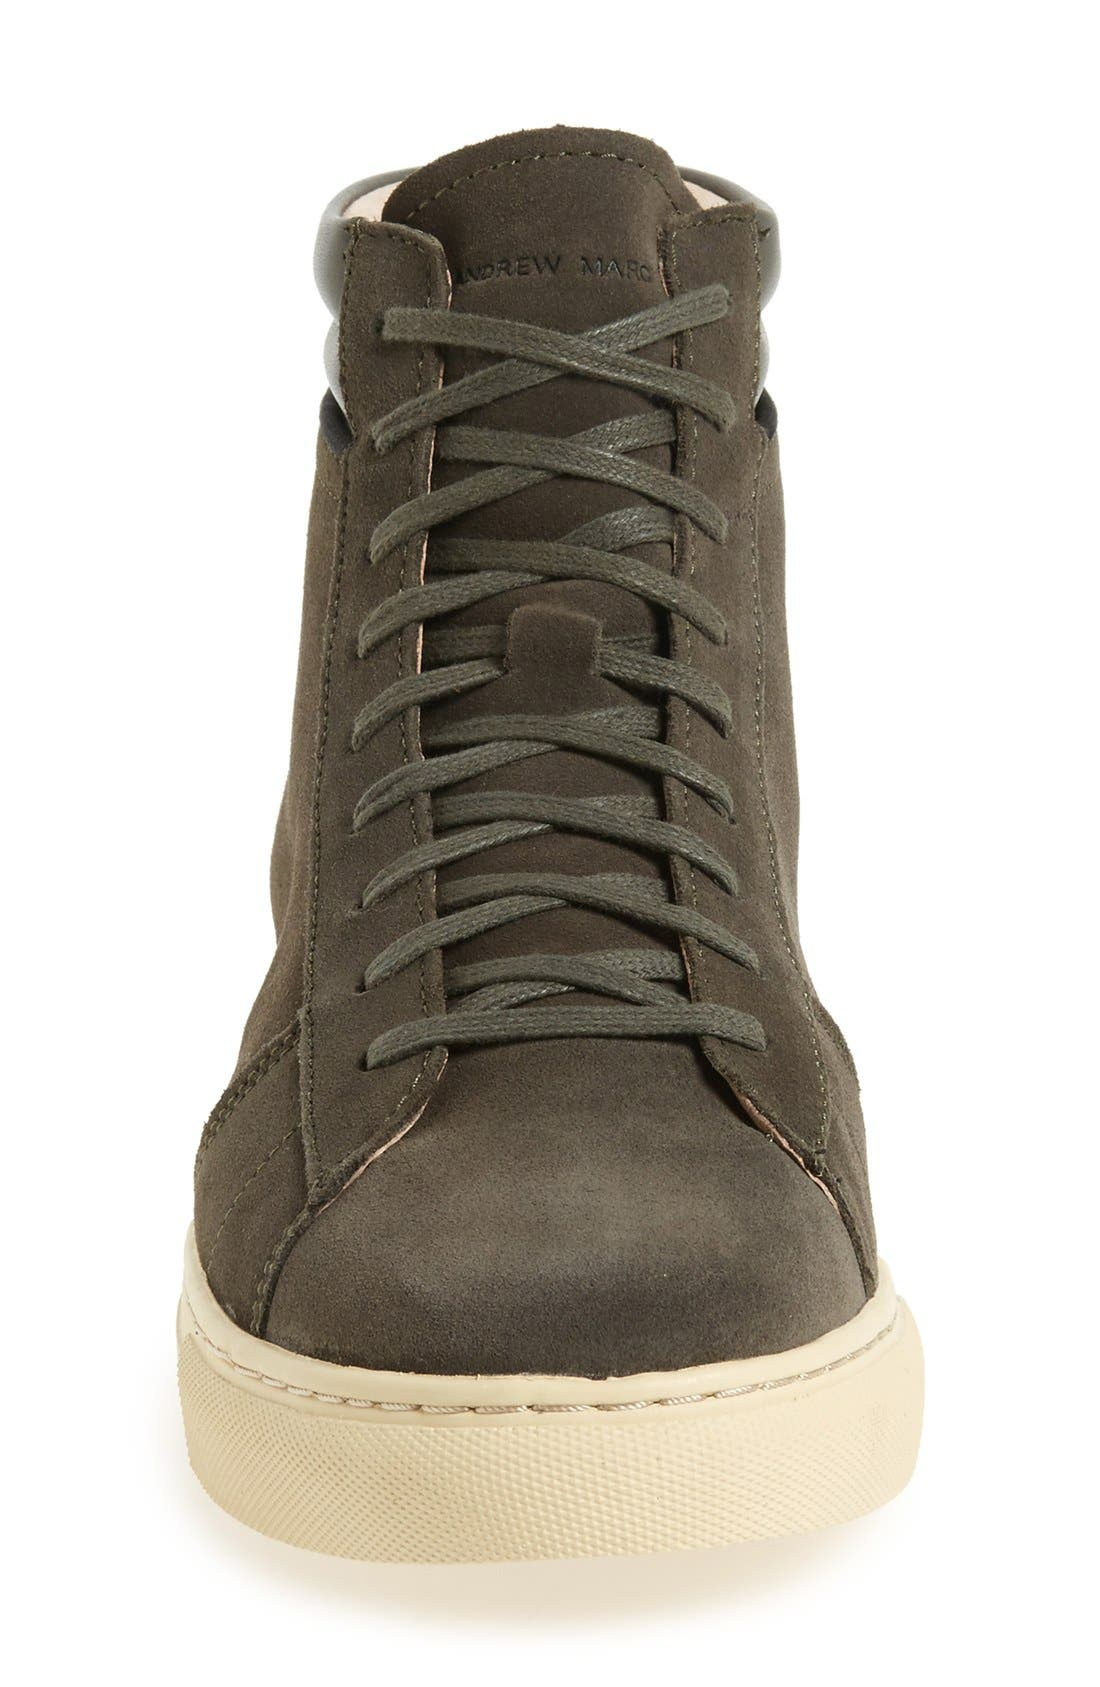 'Remsen' High Top Sneaker,                             Alternate thumbnail 3, color,                             038